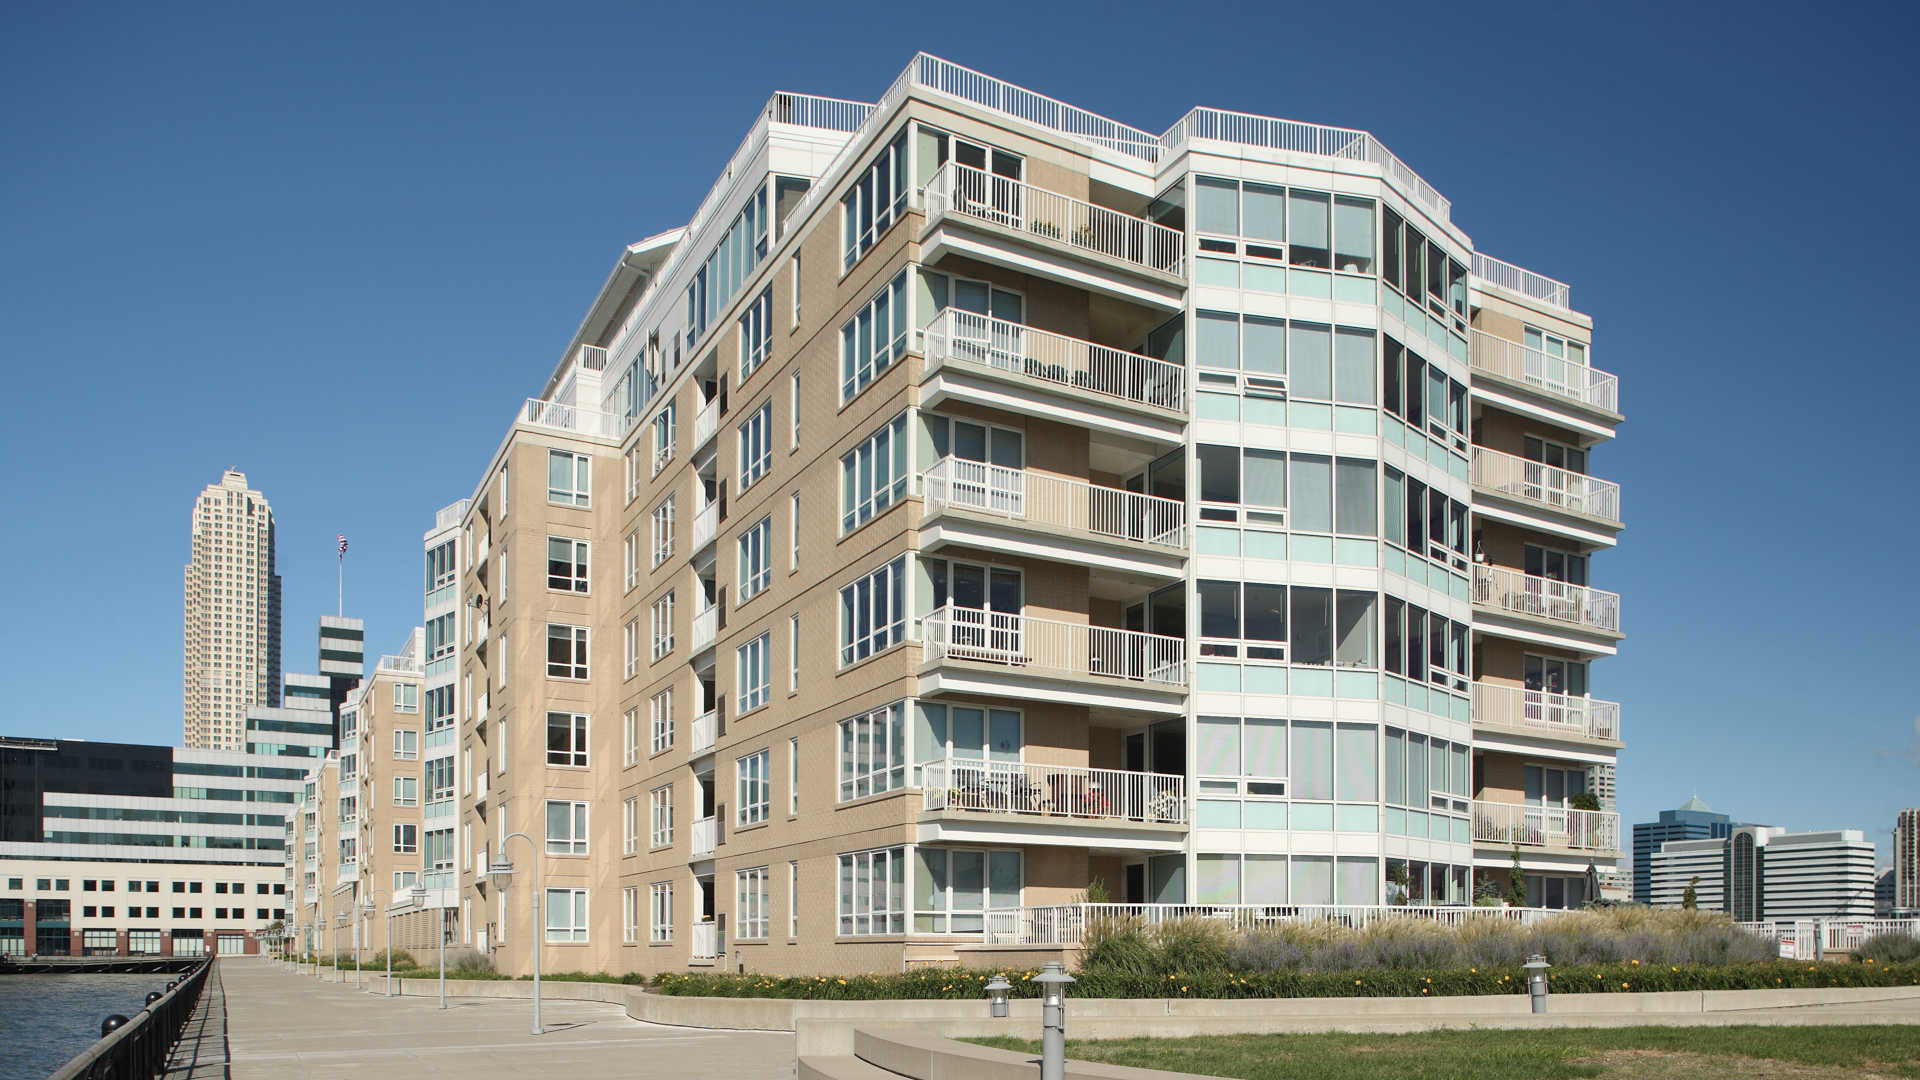 The pier apartments exterior